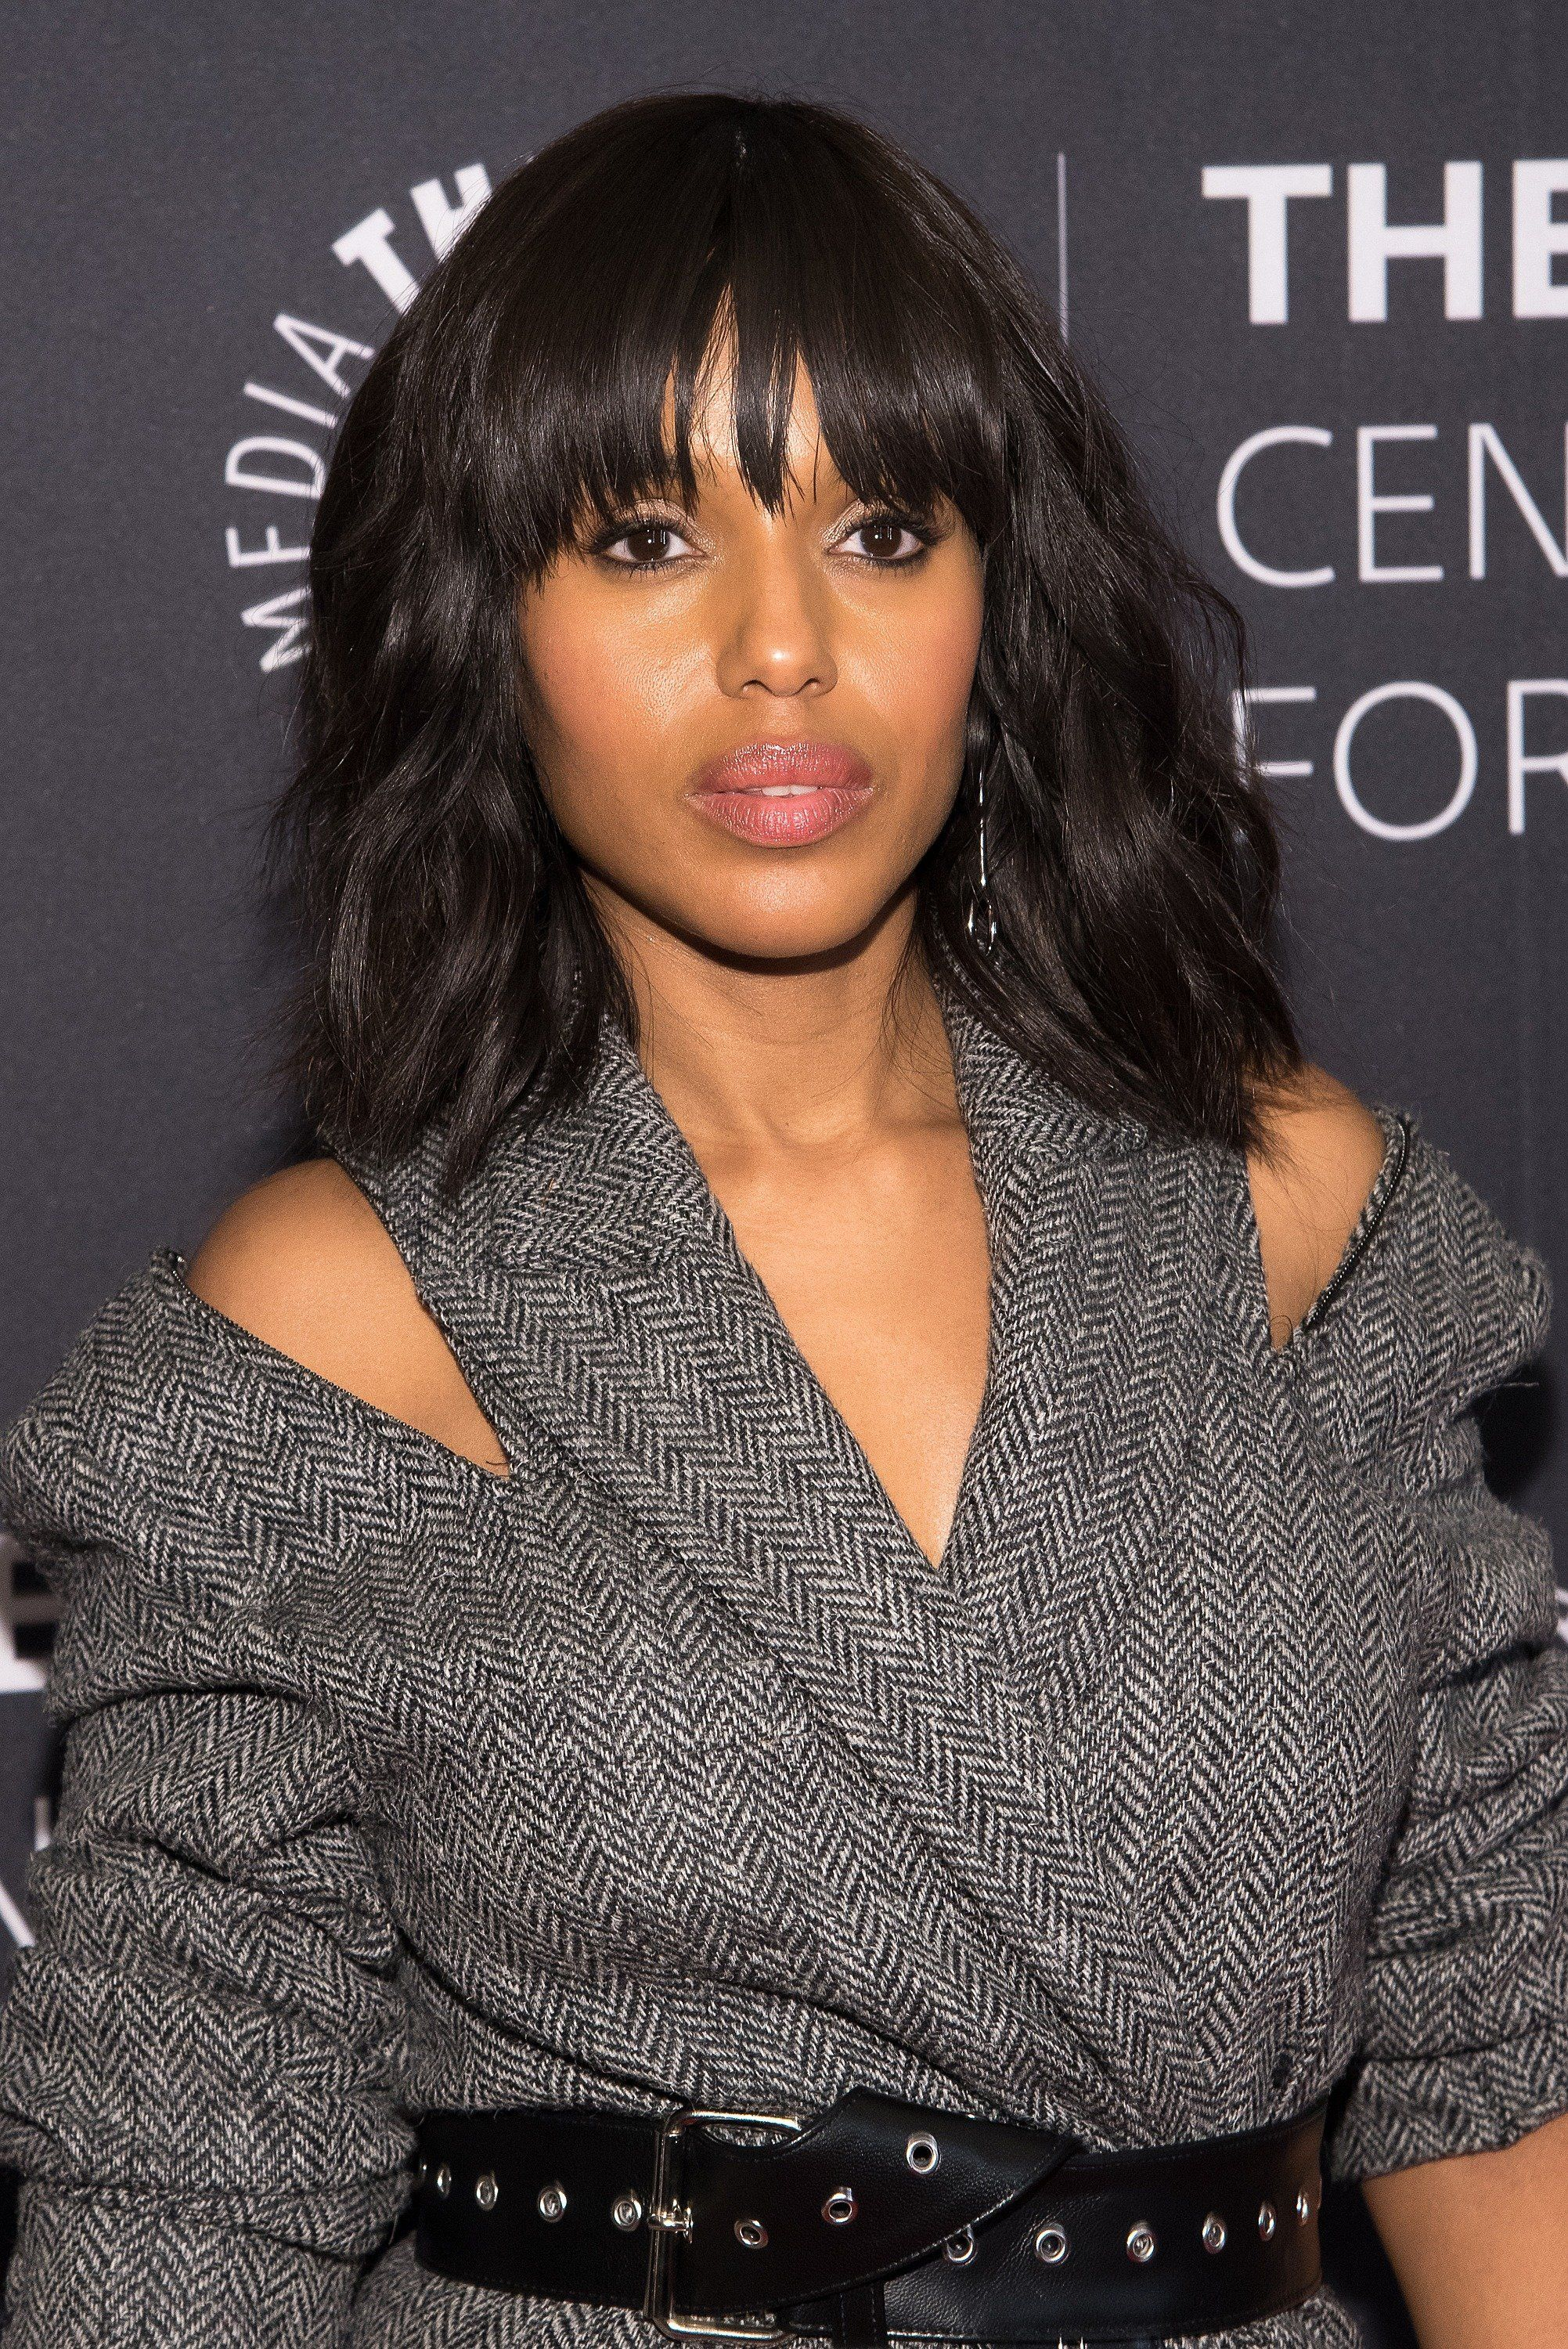 NEW YORK, NY - MAY 18:  Kerry Washington attends The Ultimate 'Scandal' Watch Party at The Paley Center for Media on May 18, 2017 in New York City.  (Photo by Mike Pont/WireImage)